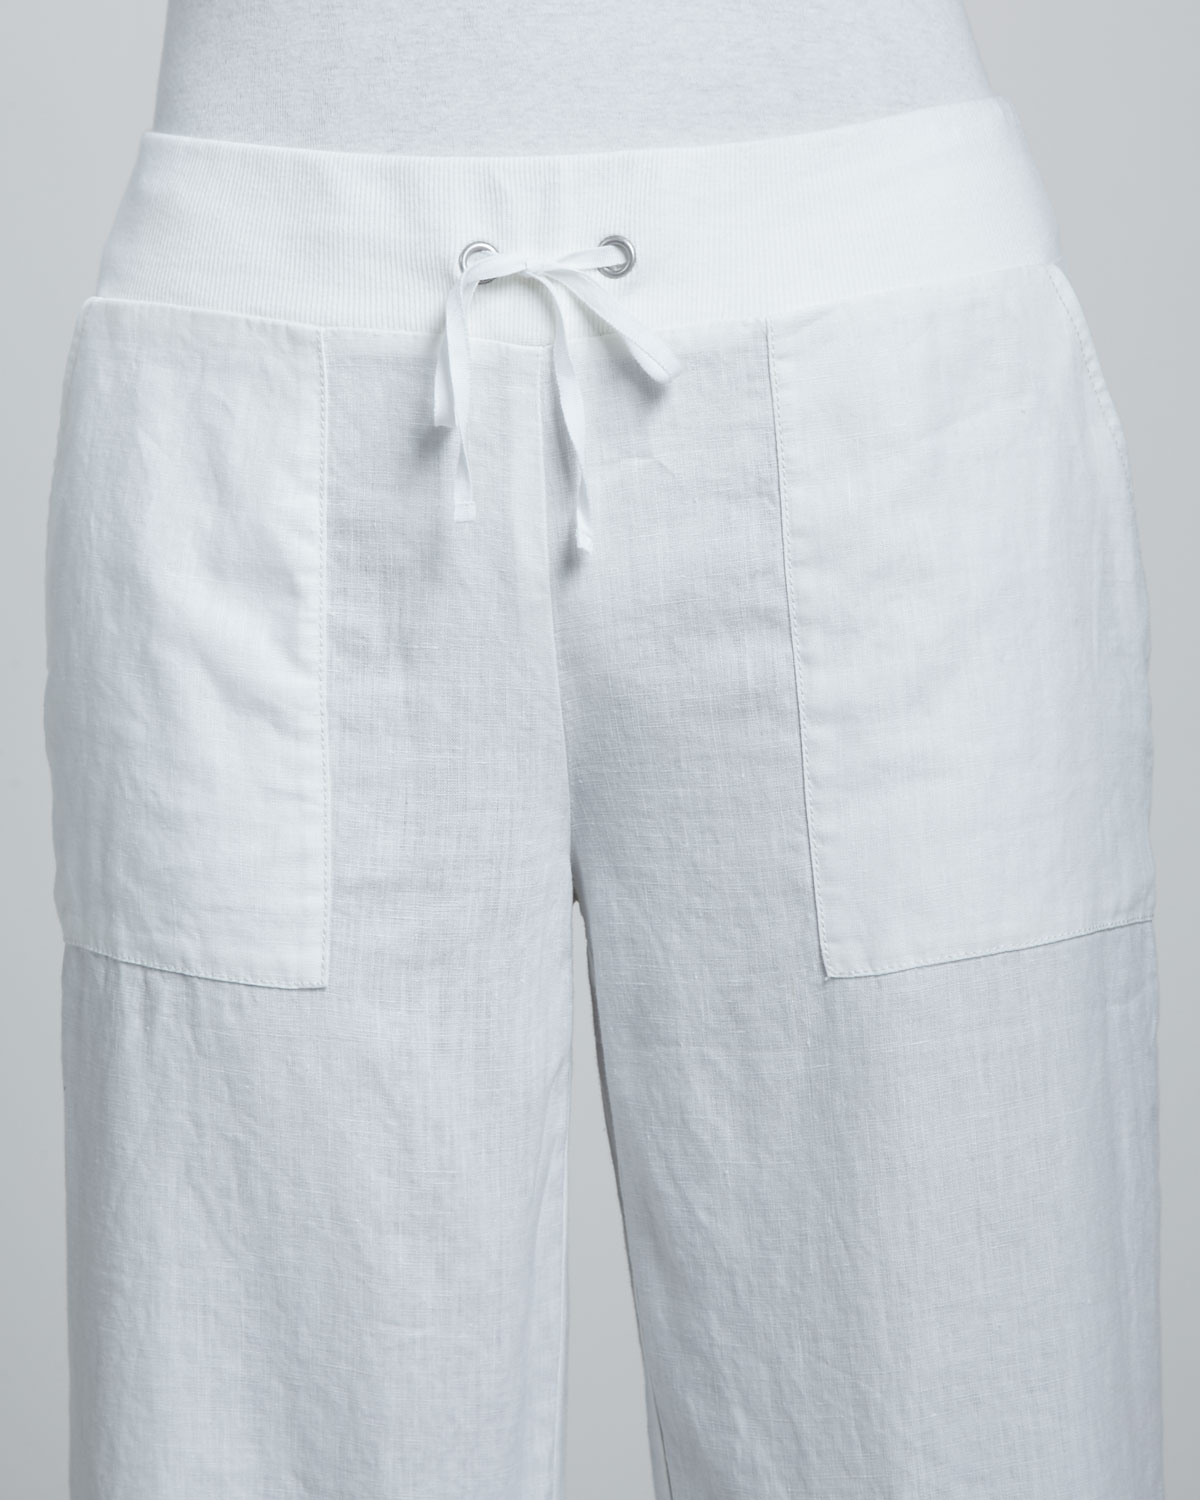 Eileen fisher Linen Drawstring Capri Pants in White | Lyst